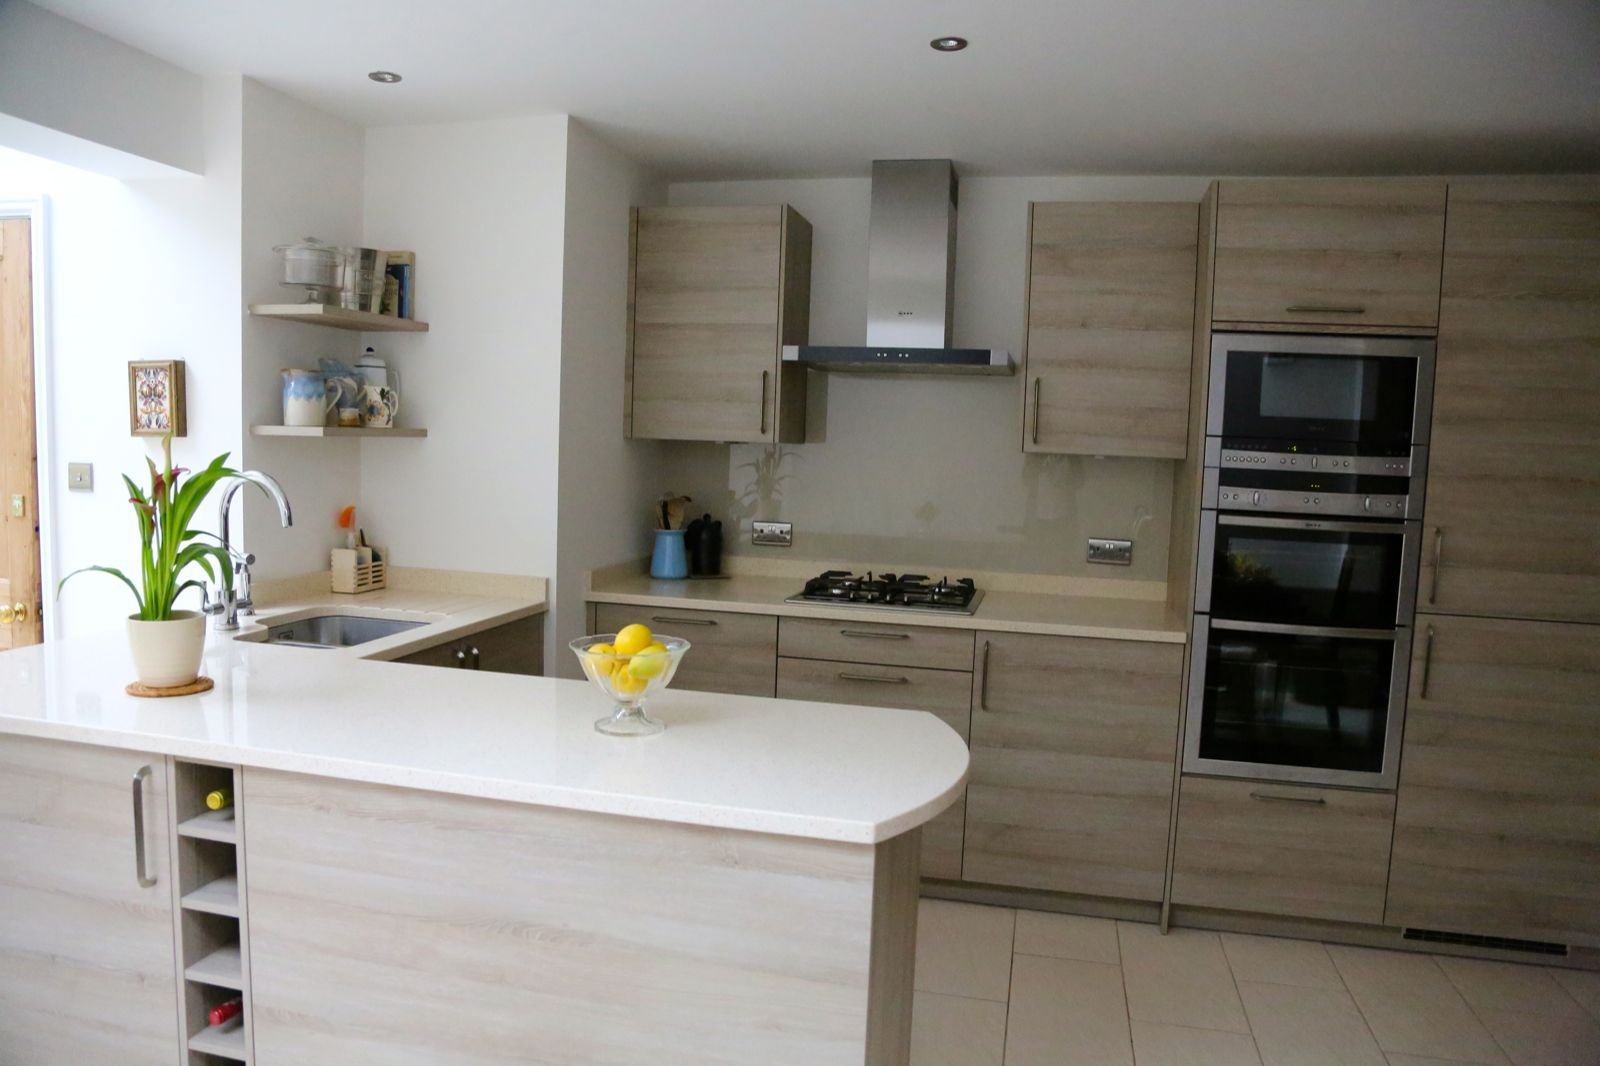 Whitewash Ash Wood With Light Worktops By Hacker At The Kitchen Company,  Uxbridge